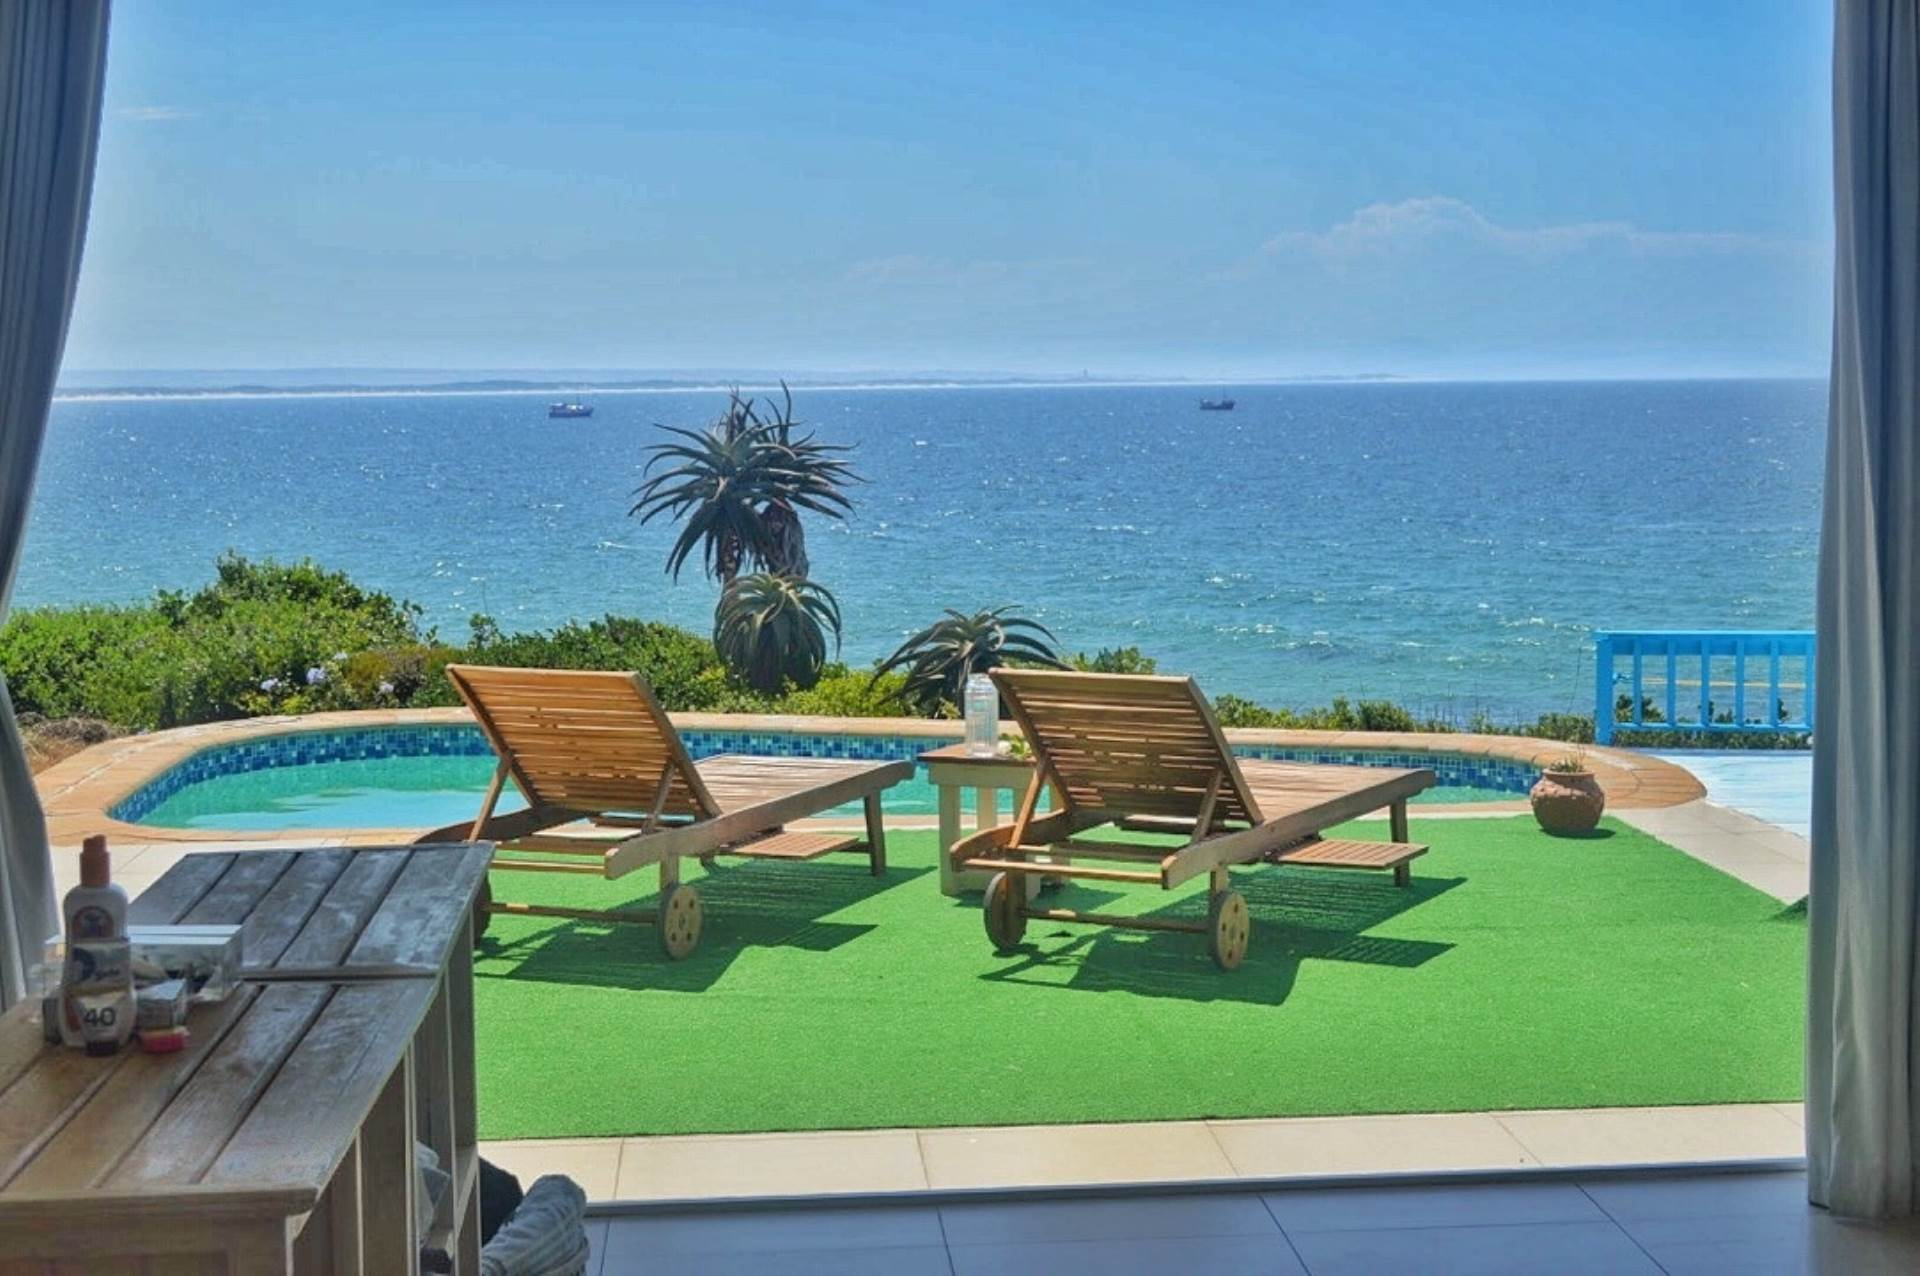 3 BedroomHouse For Sale In St Francis On Sea Phase I